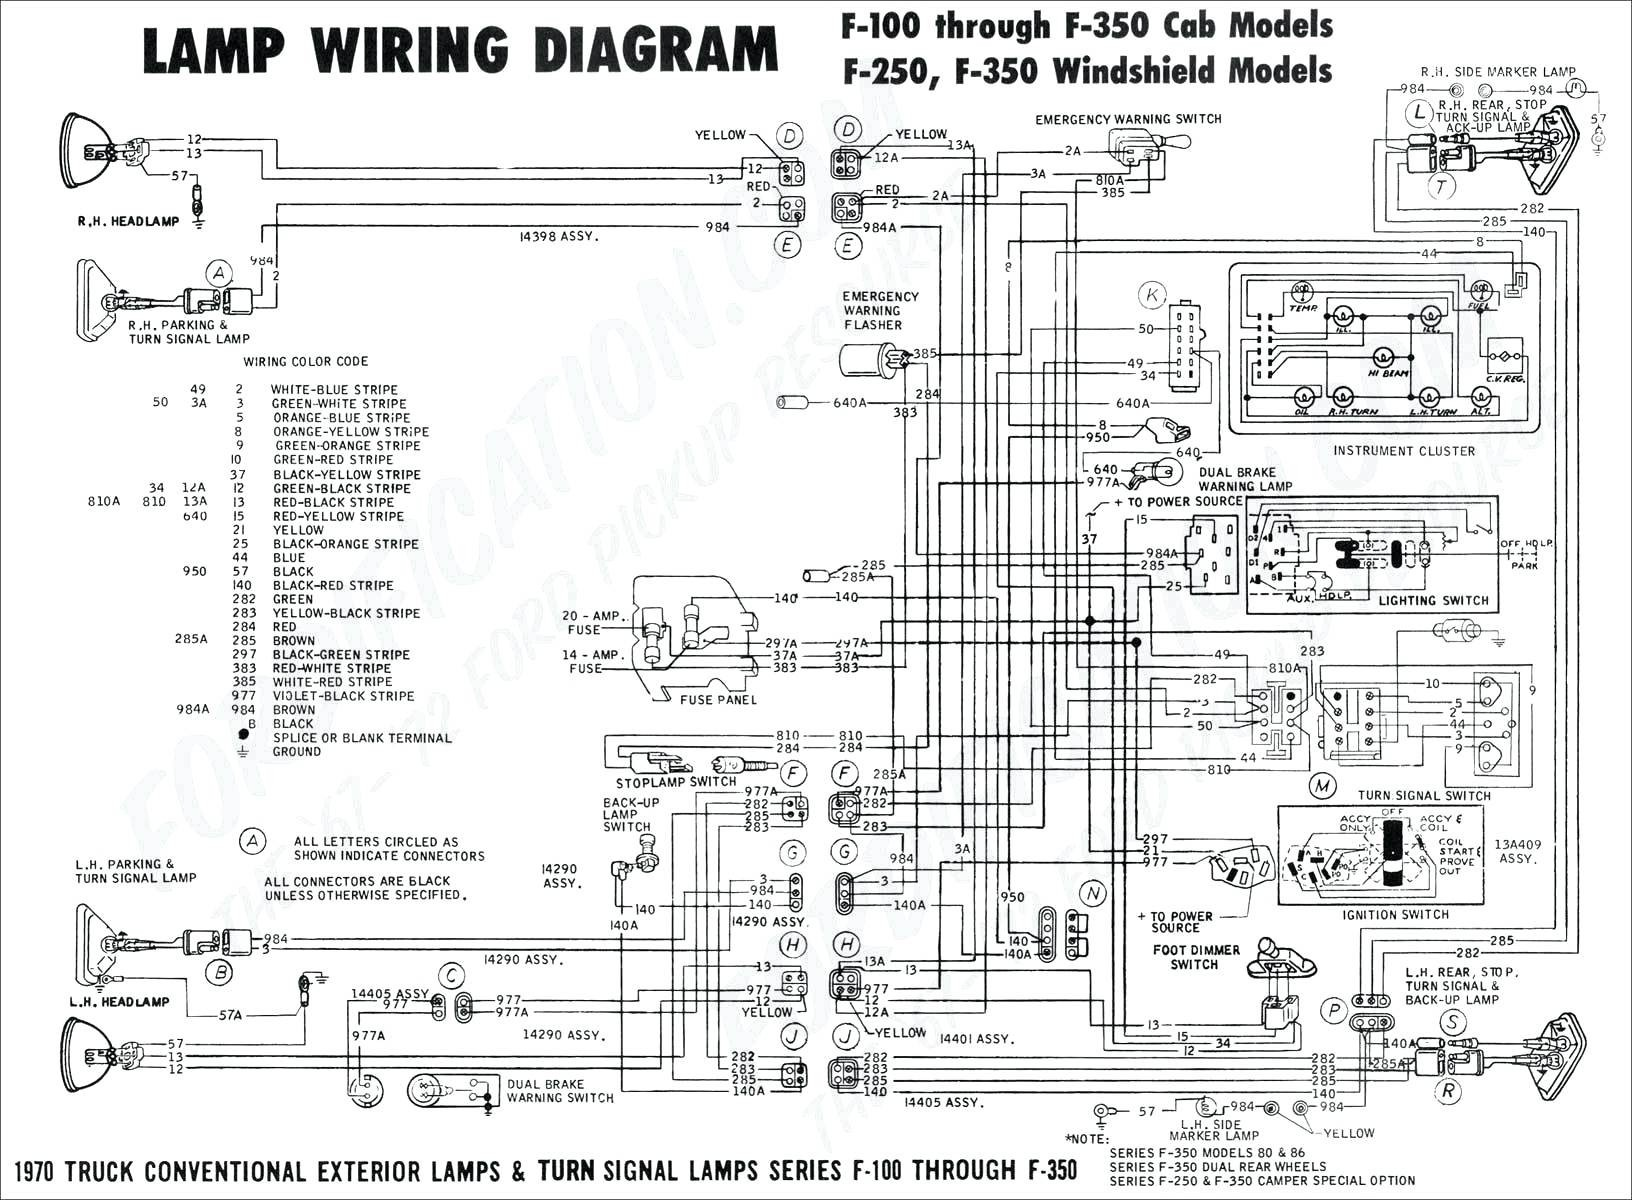 Ignition Coil Diagram ford Ignition Switch Wiring Diagram Fresh top Car Brake Diagram Rear Of Ignition Coil Diagram Bmw E83 Wiring Diagram